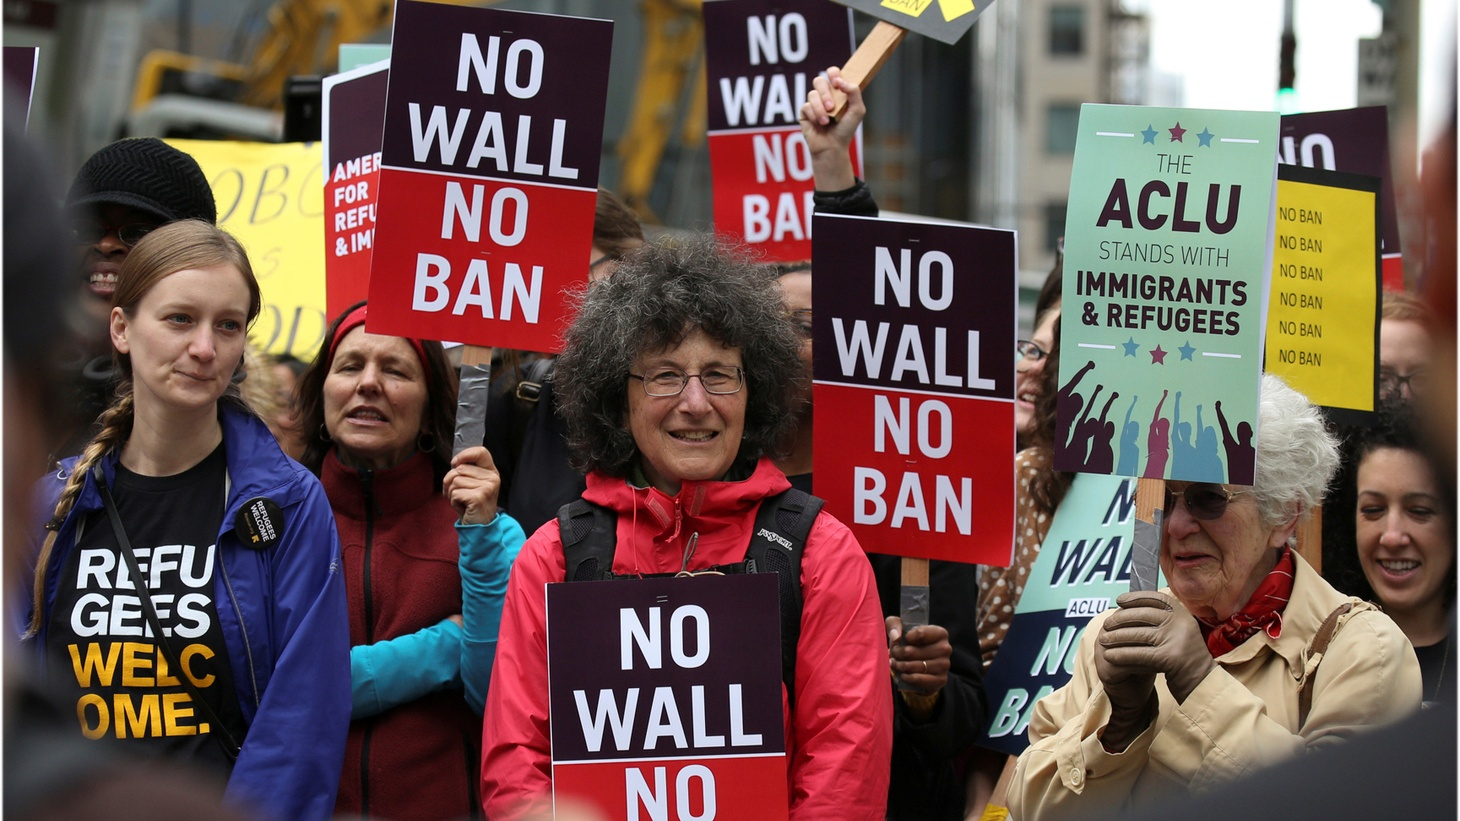 On Monday, the 9th Circuit Court of Appeals in Seattle heard arguments on President Trump's revised travel ban. Tuesday, Angelenos will vote in a local election for seats on the city council and school board, and on a measure on police discipline..